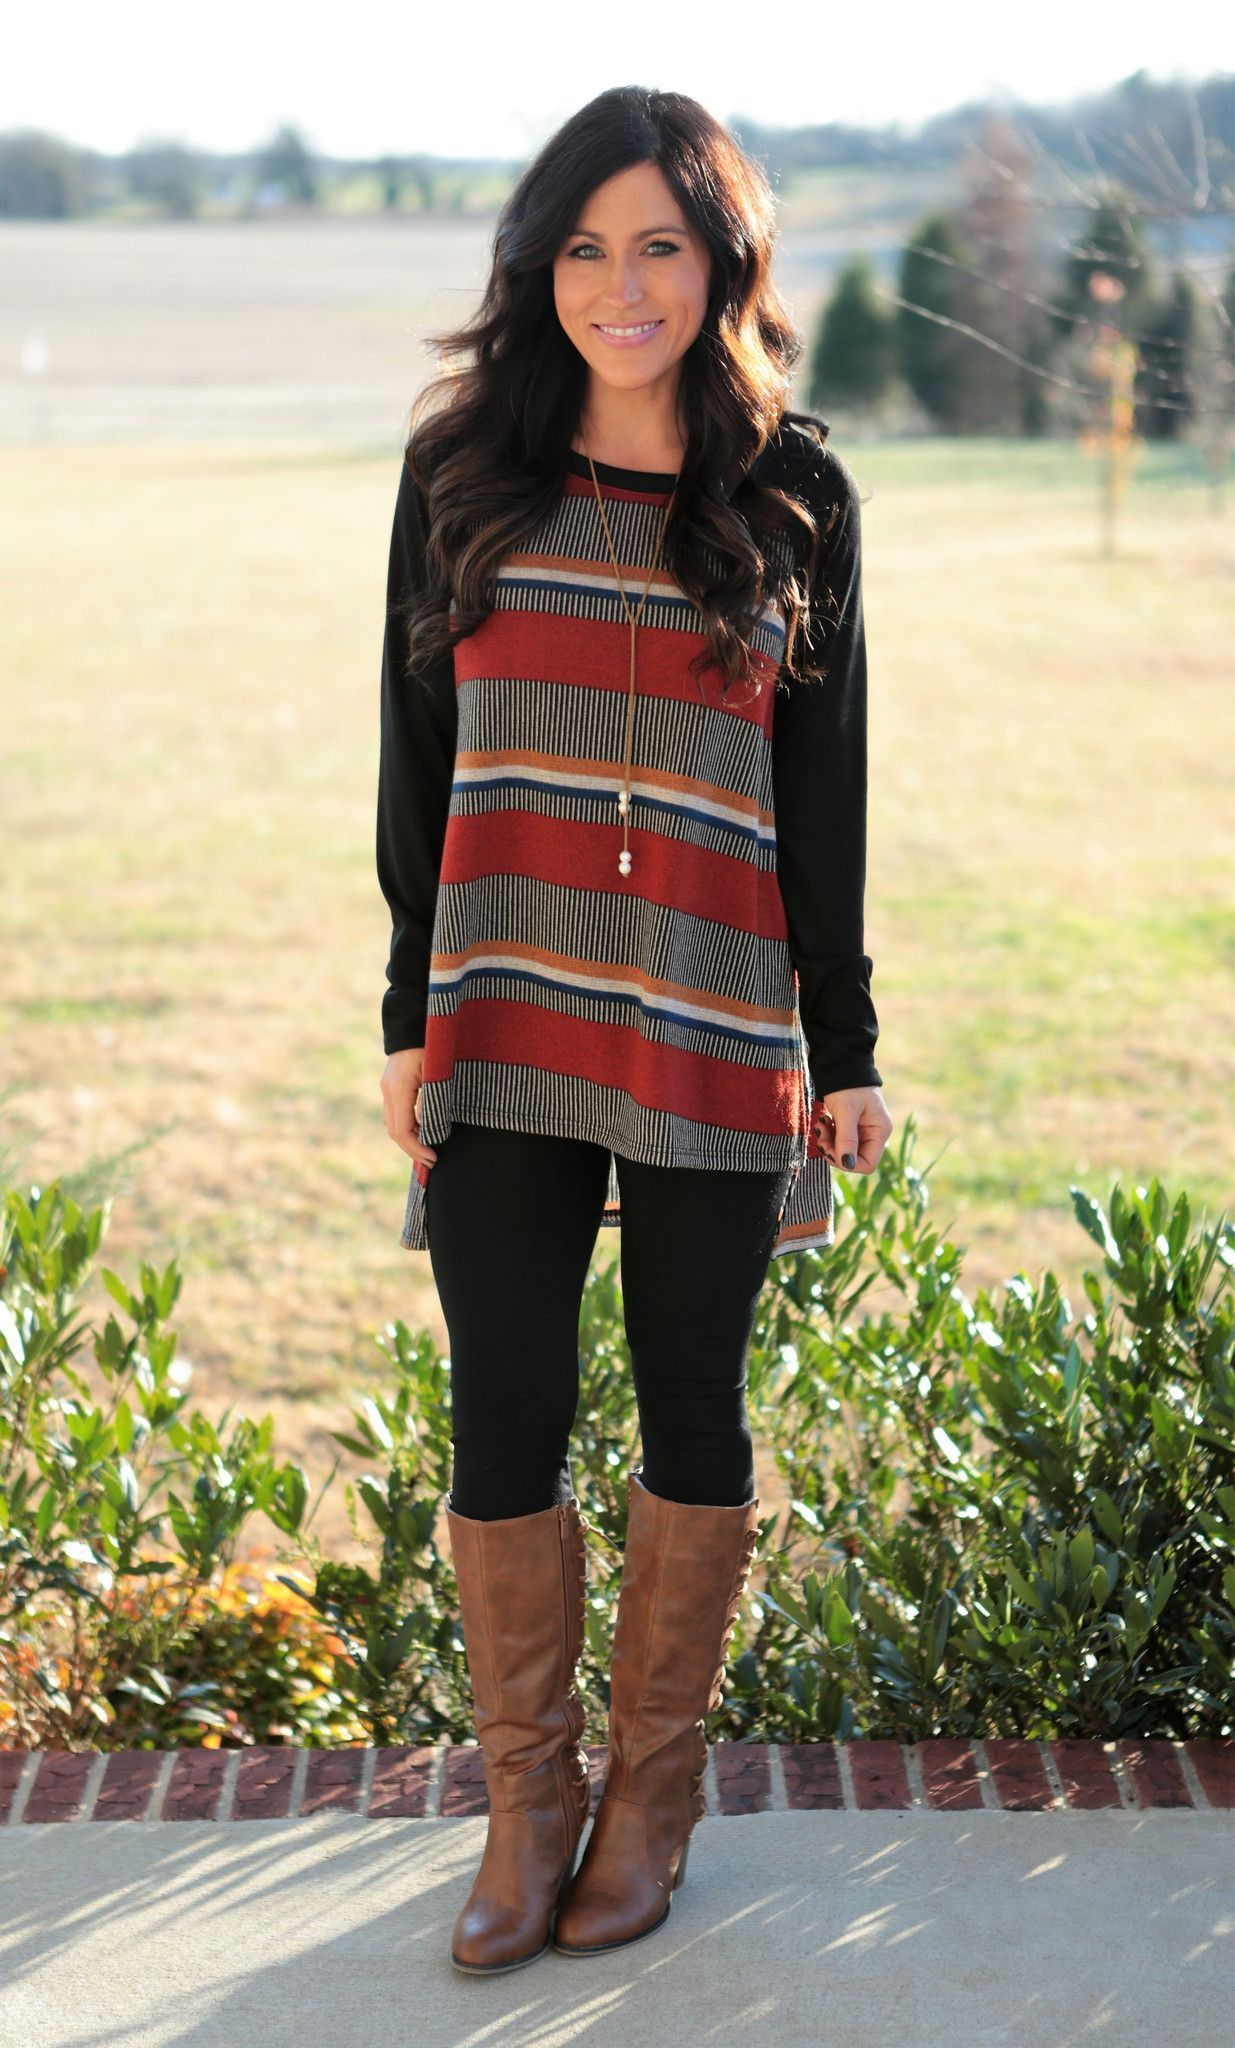 From This Moment Tunic (available in 2 colors)